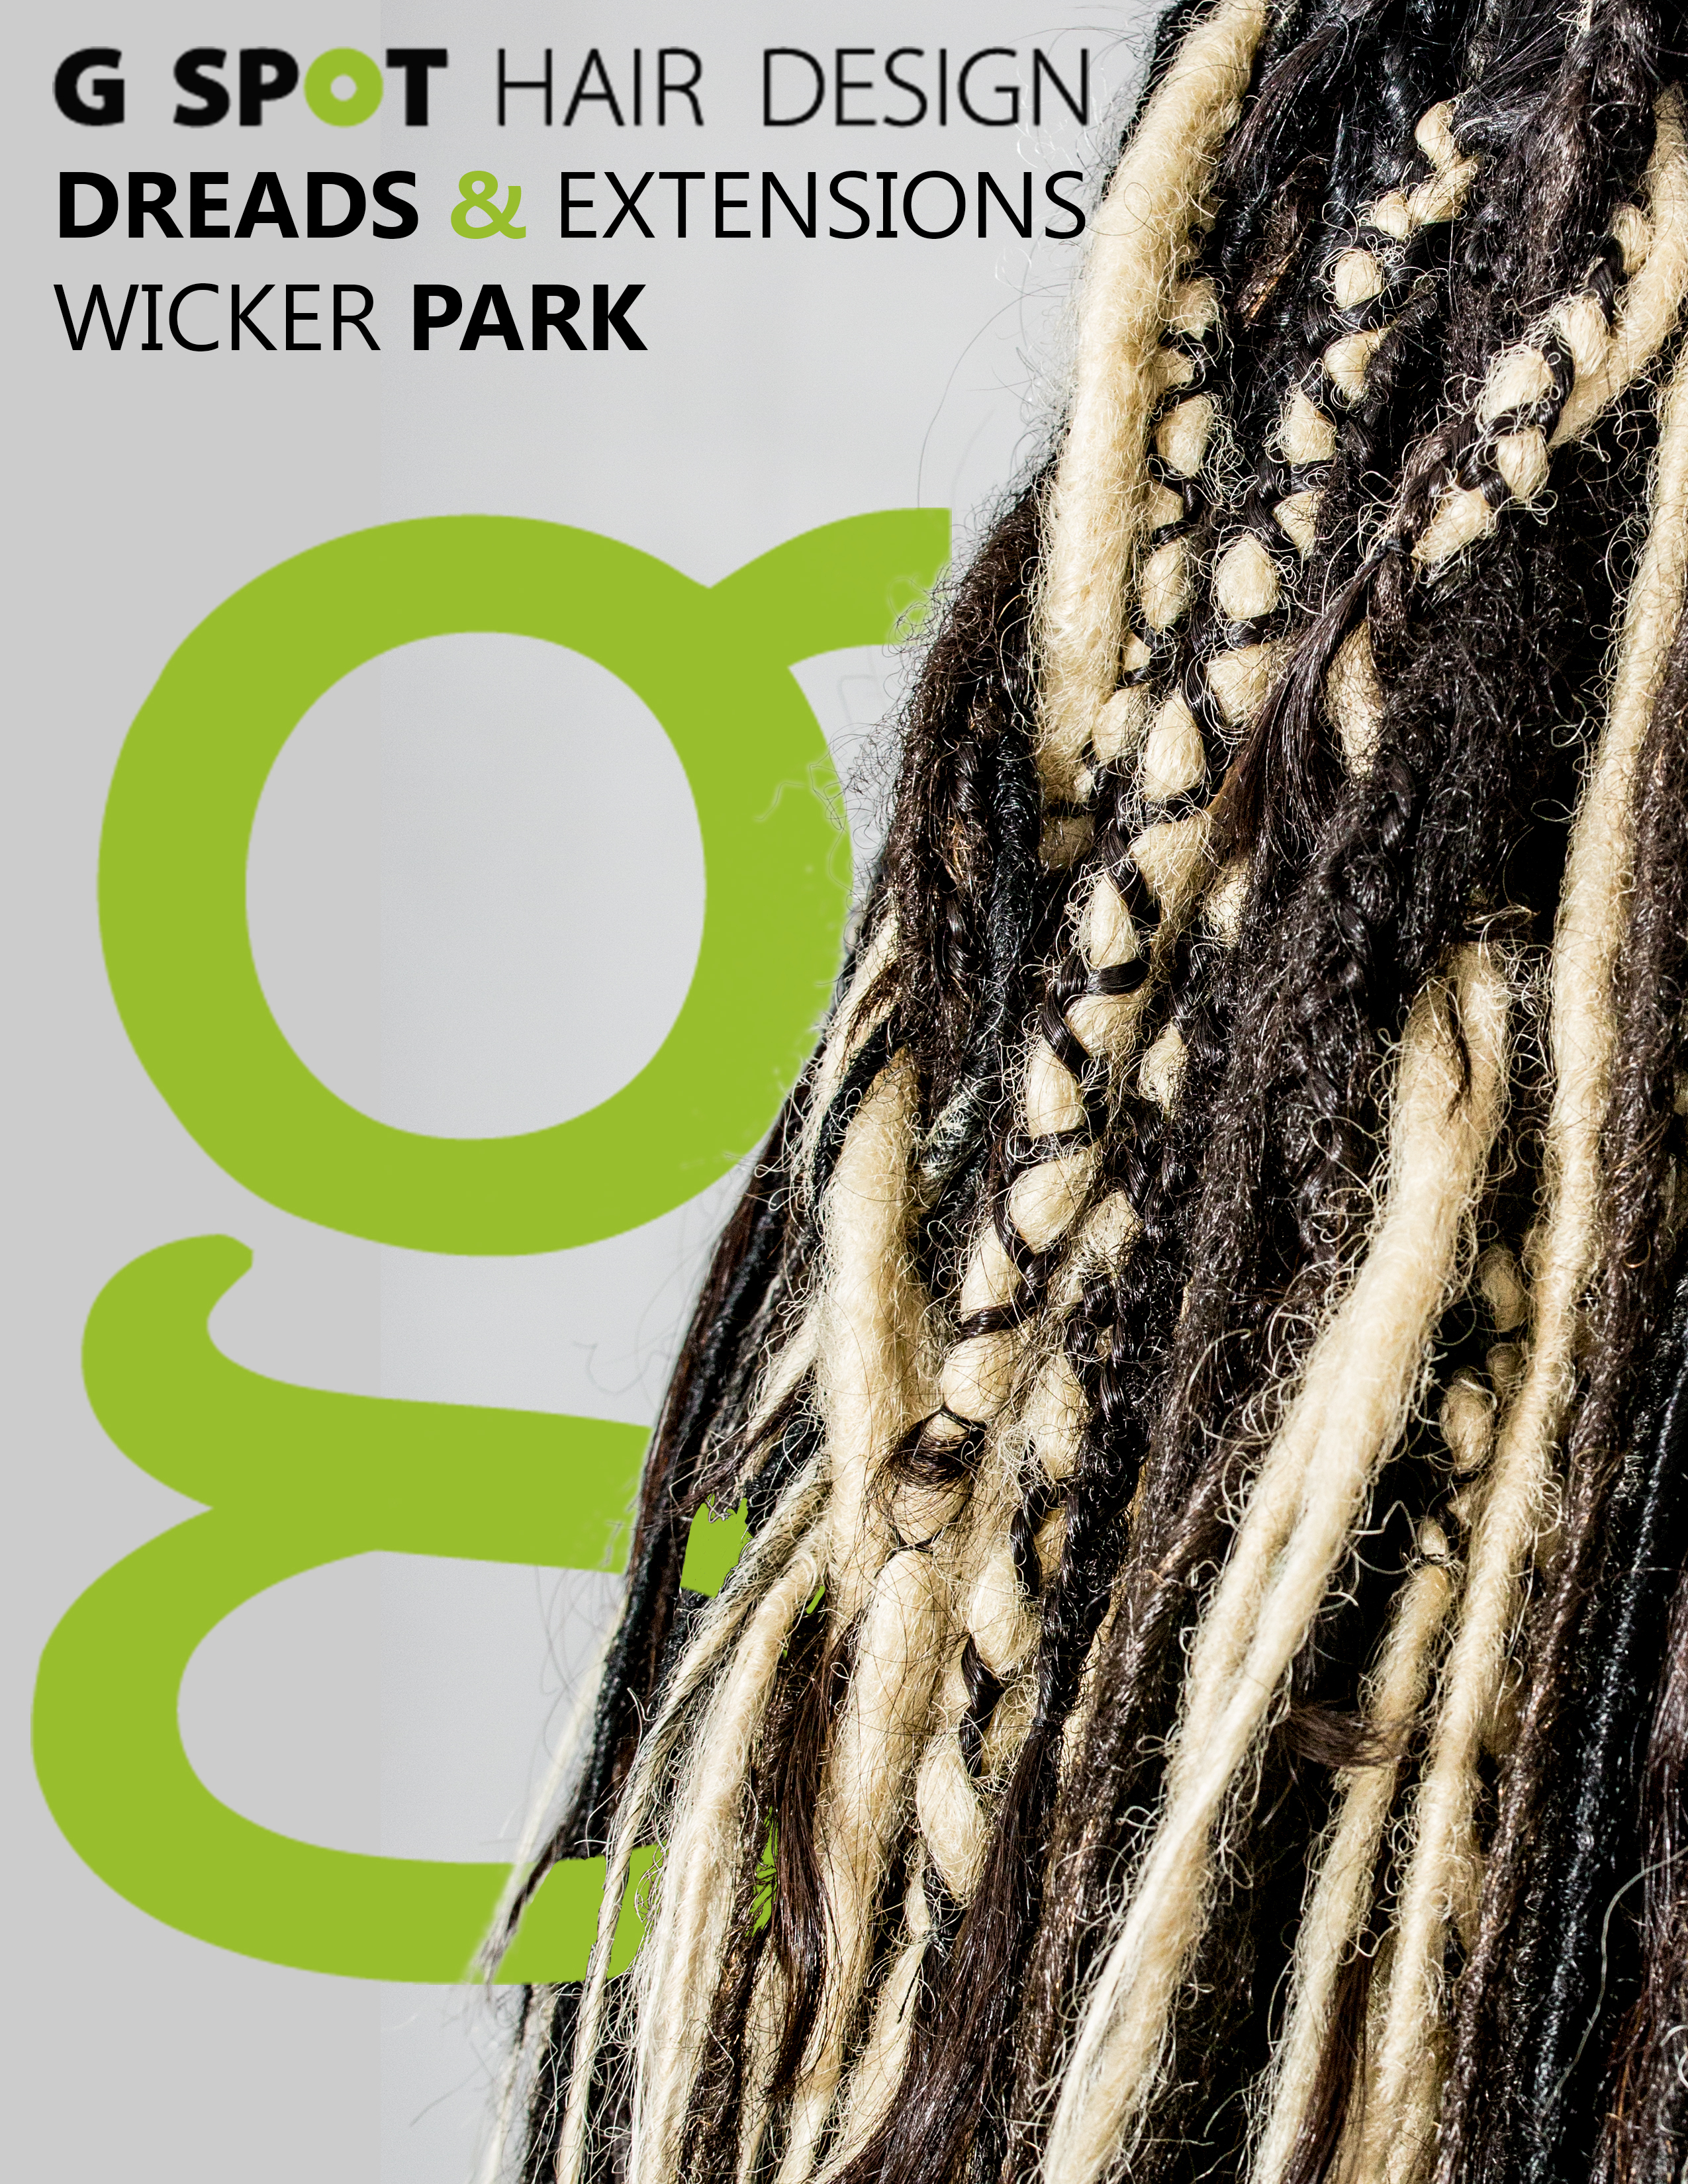 Erin Green Hair Stylist Wicker Park Chicago Illinois